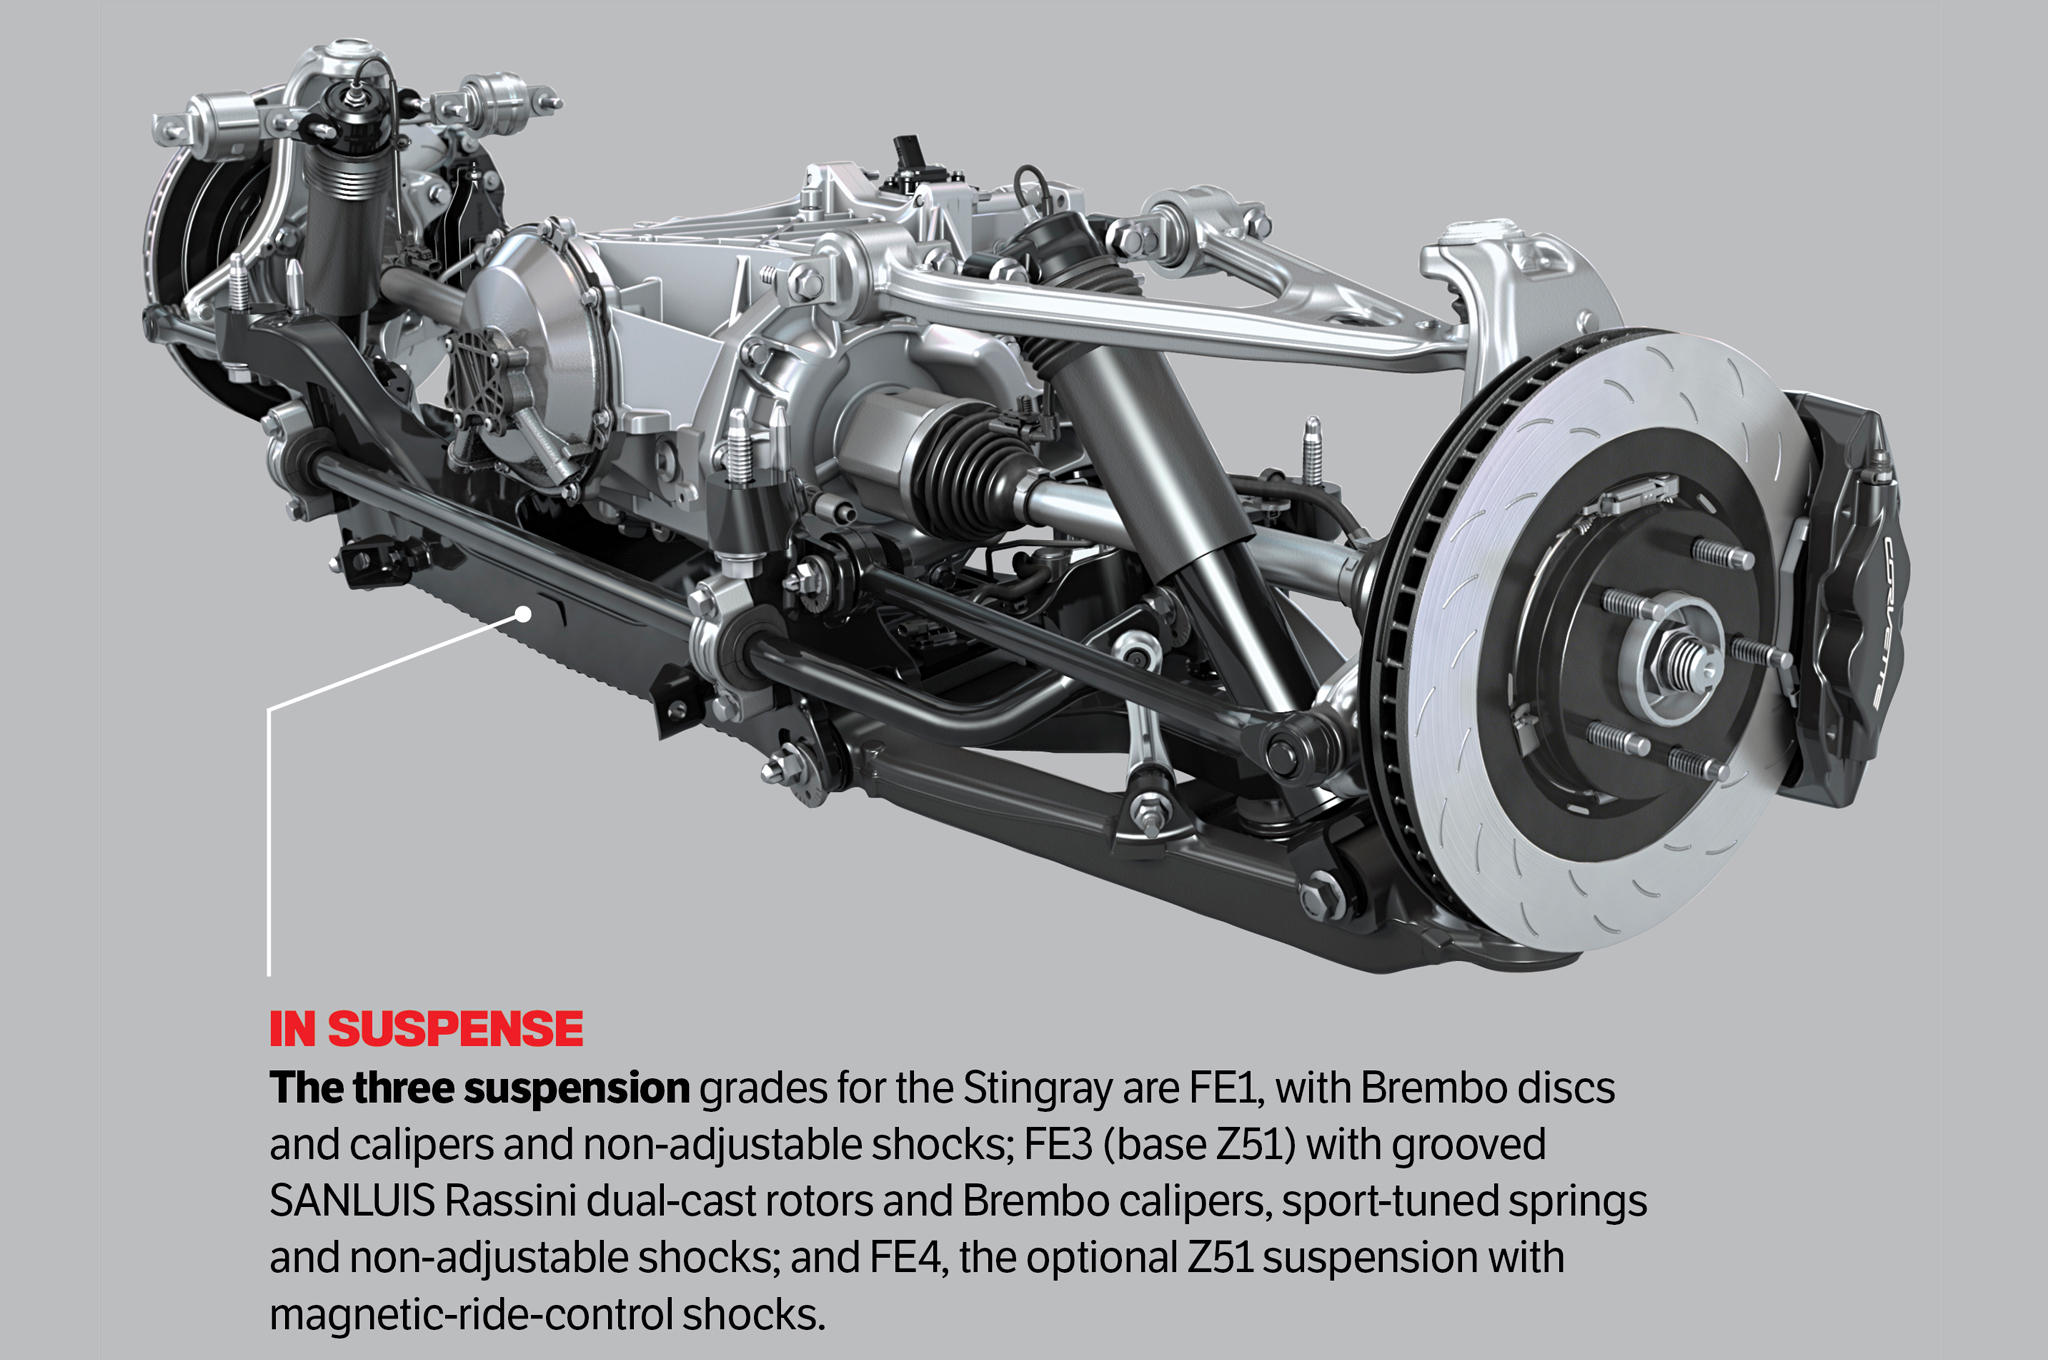 c7 corvette rear suspension diagram  corvette  auto parts